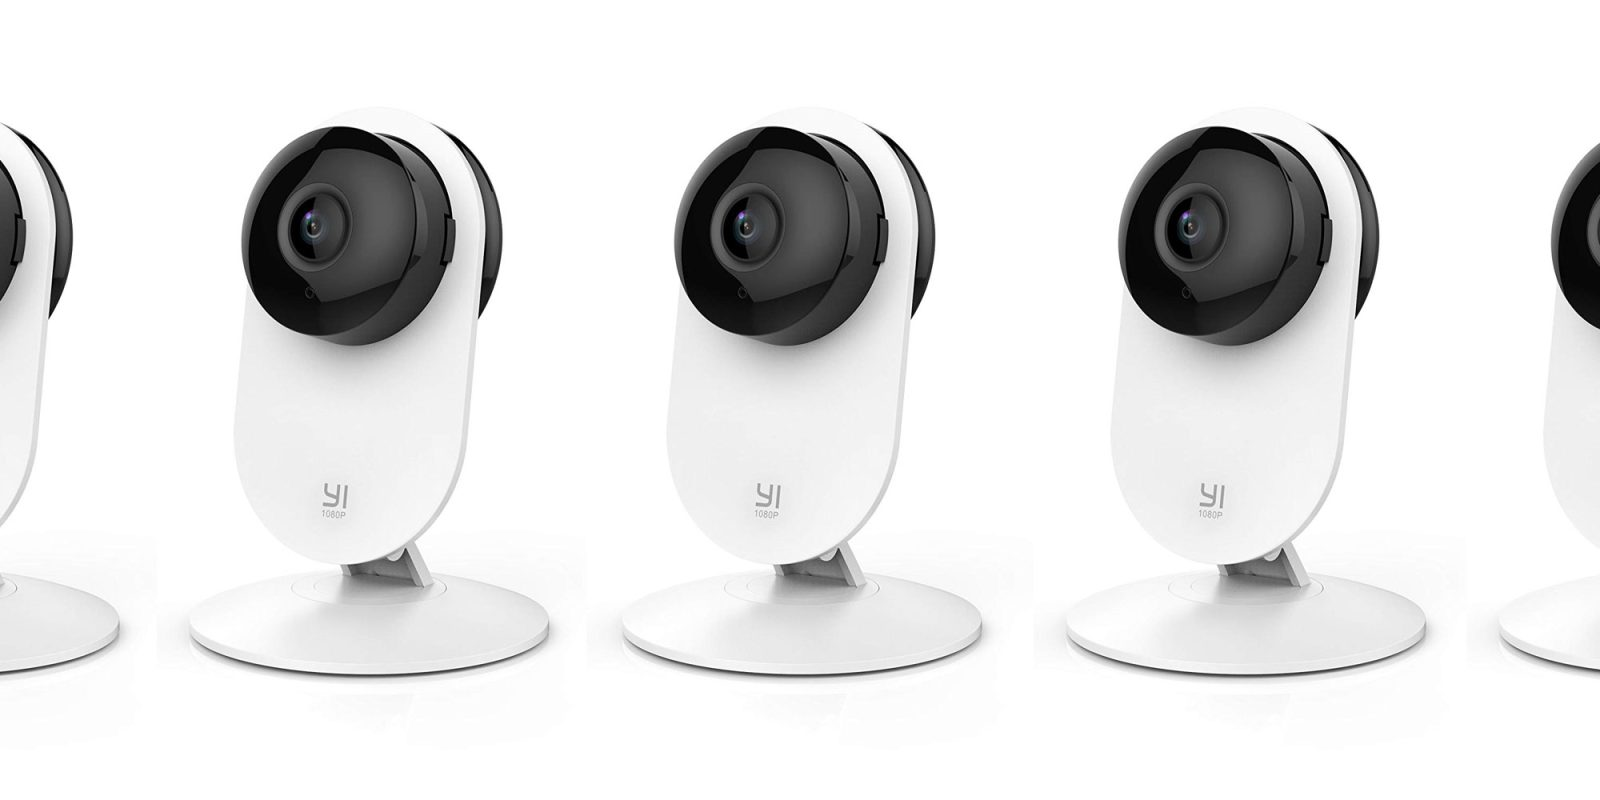 YI's Wi-Fi 1080p security camera supports local recording for $22 (25% off)